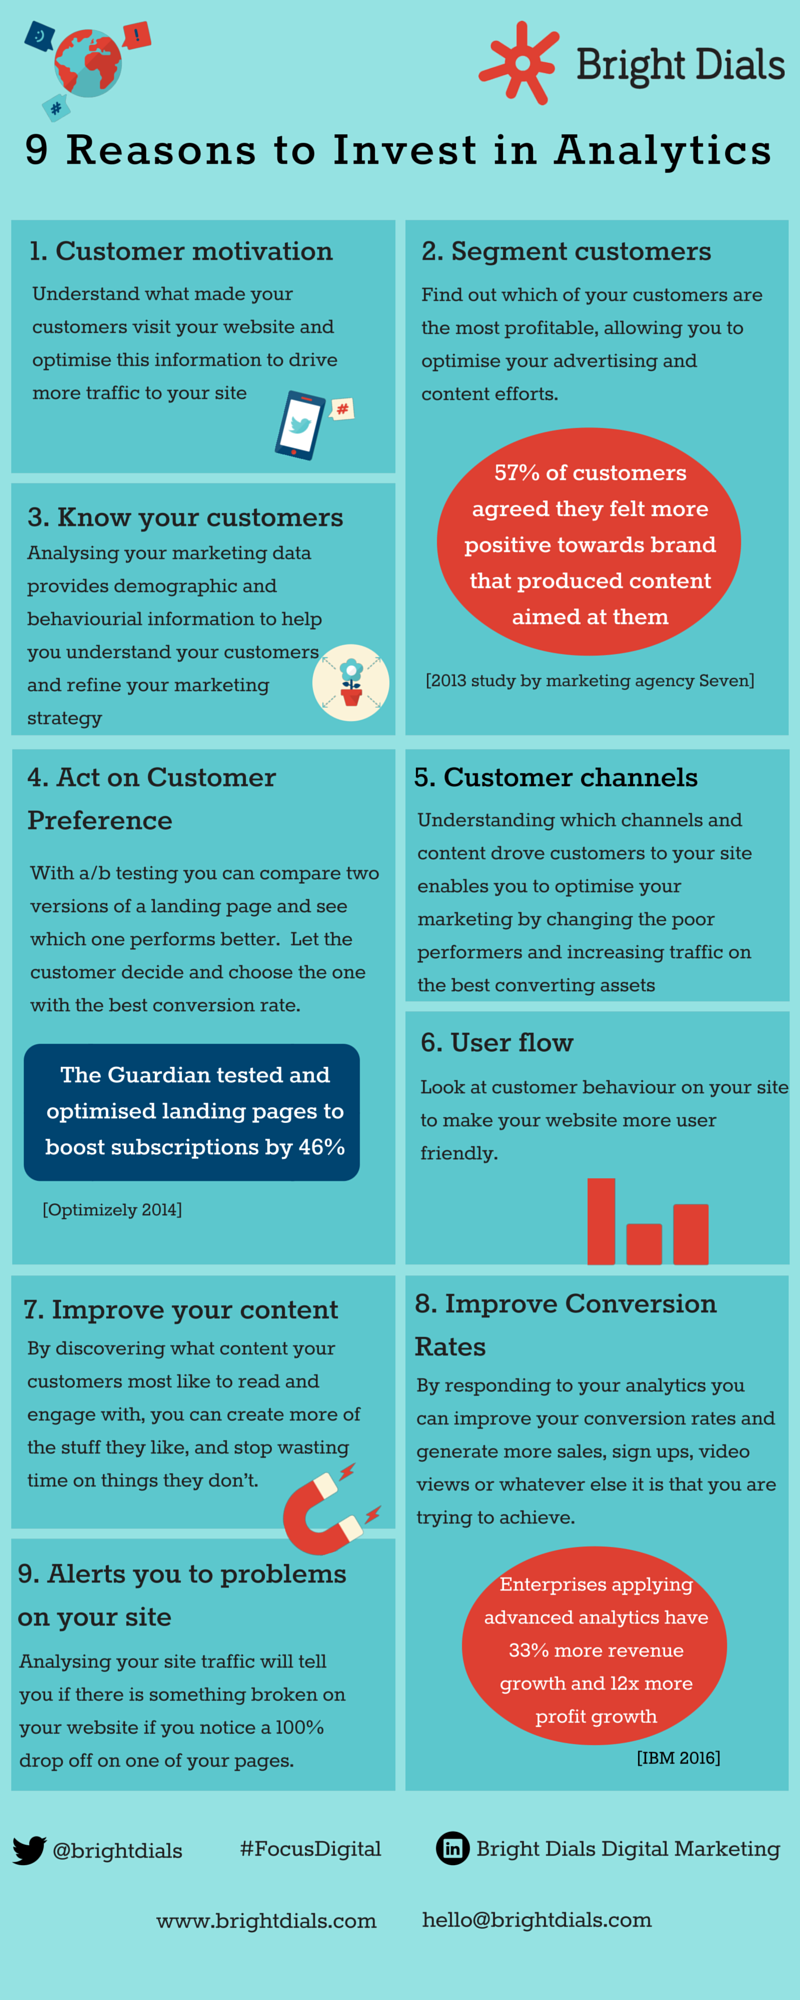 9 Reasons to Invest in Analytics Infographic